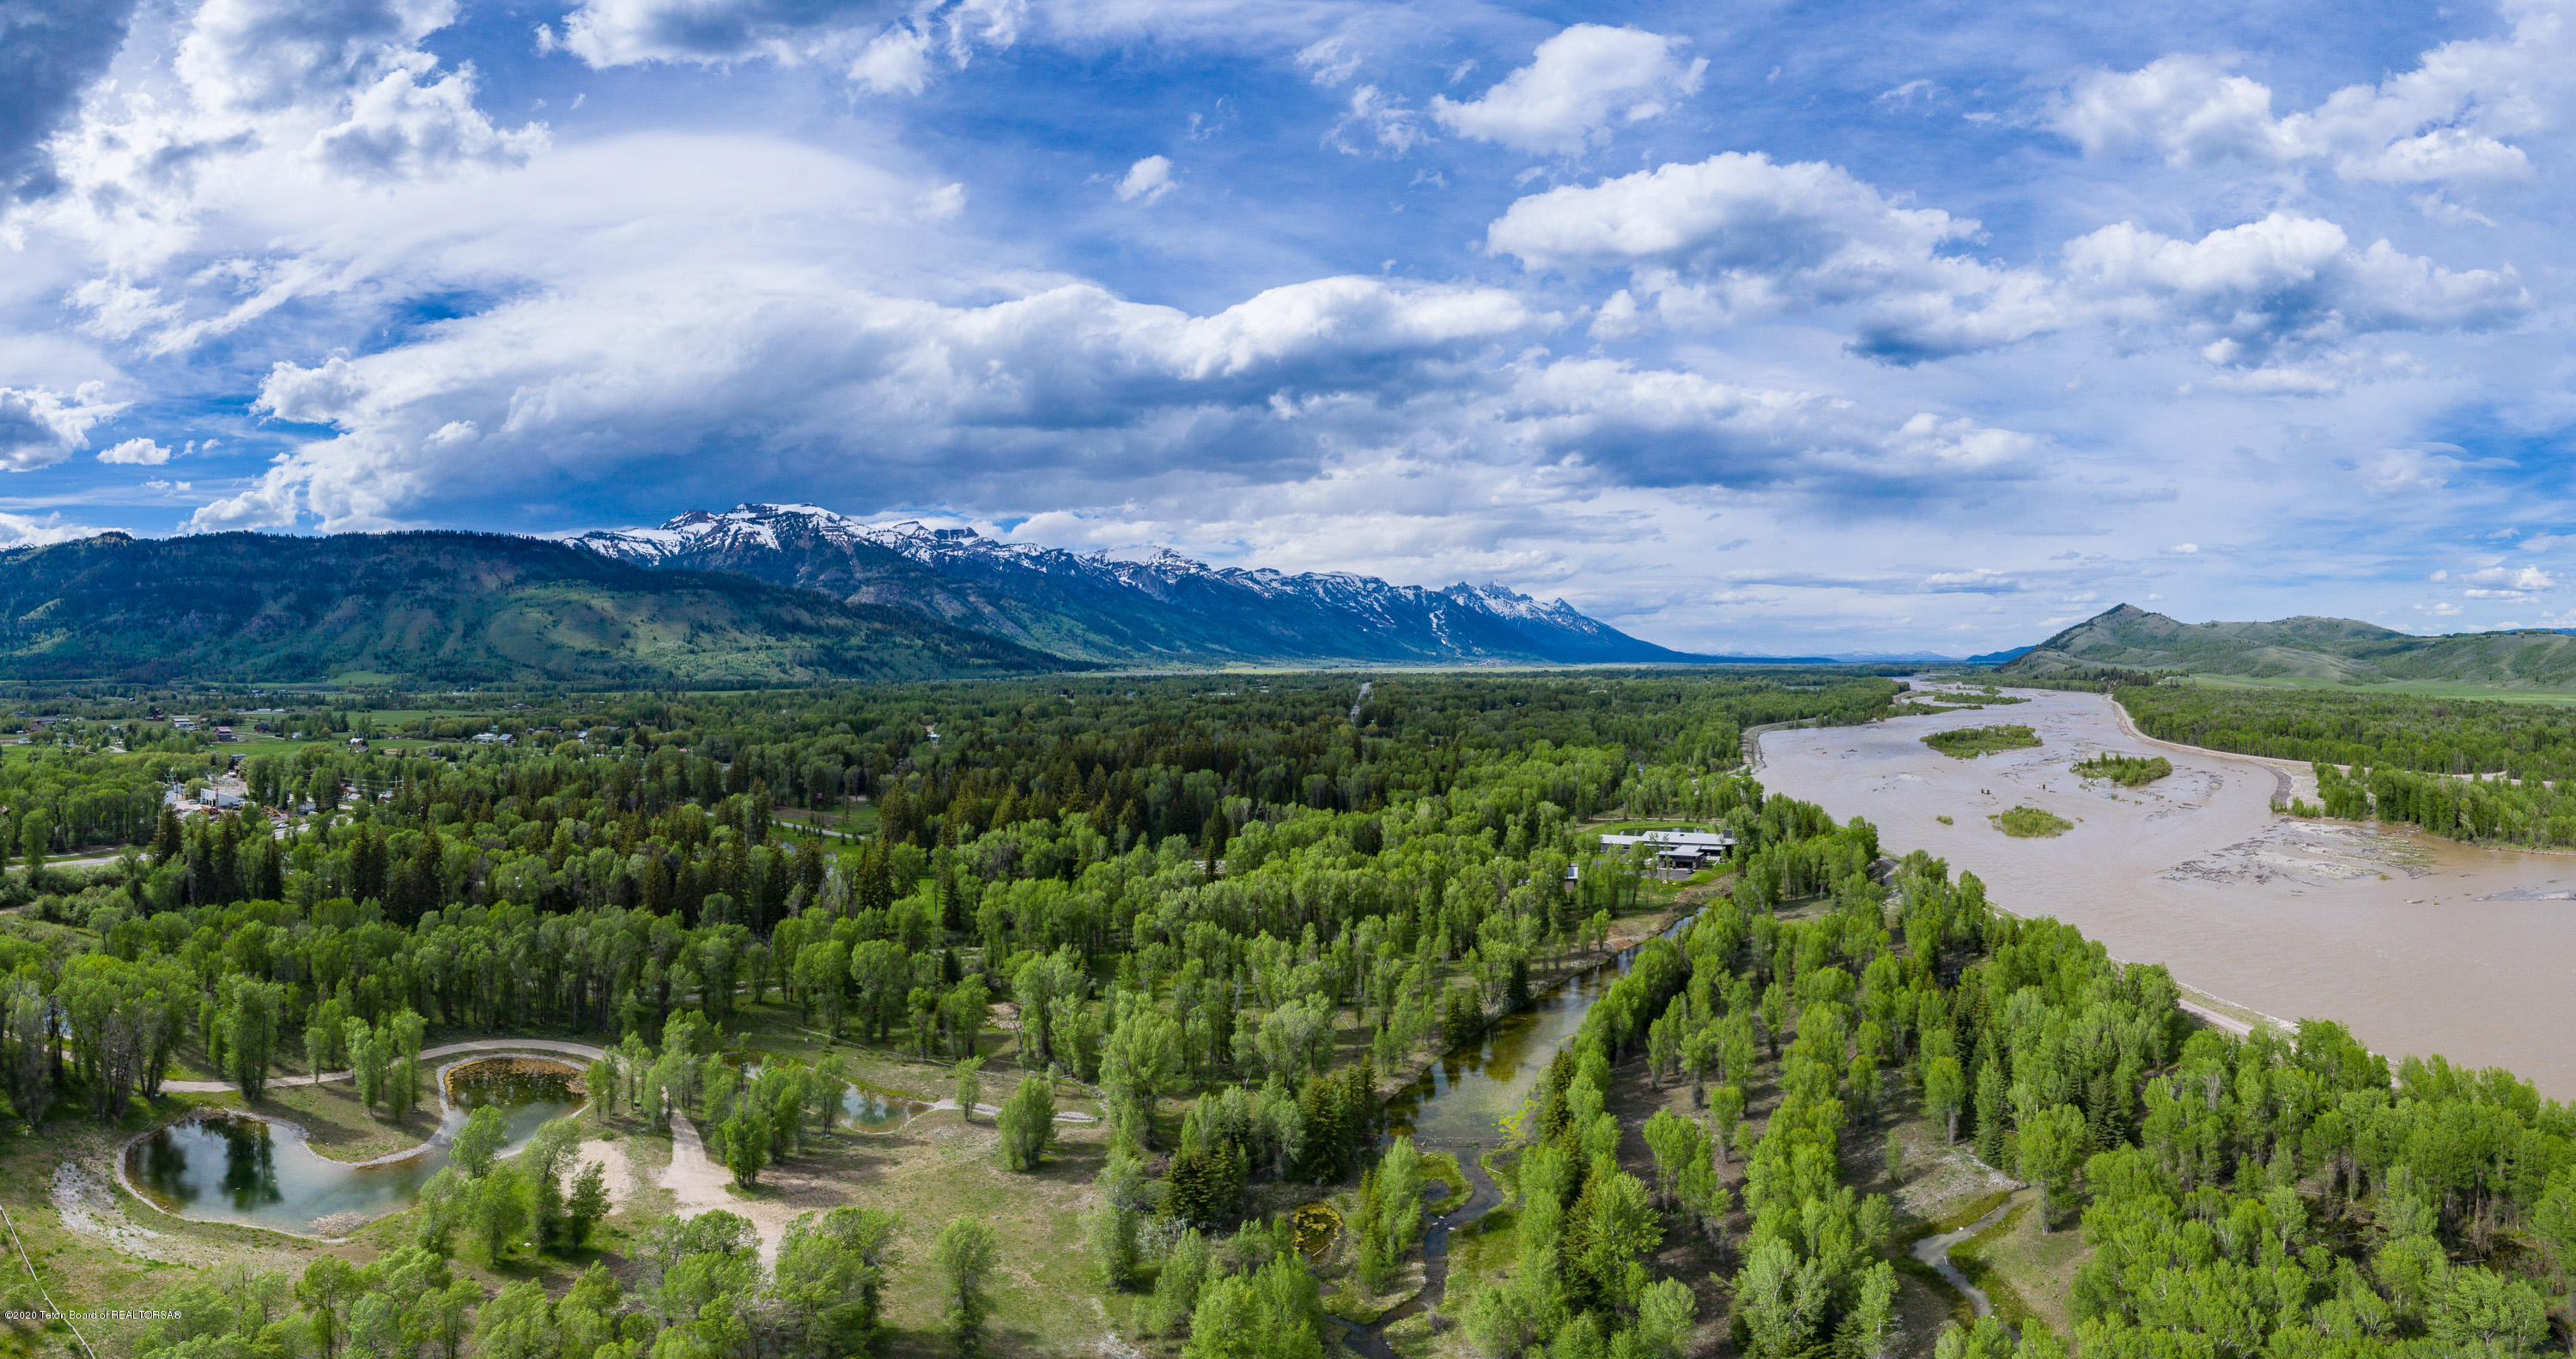 Land/Lot for Sale at 4260 RIVER SPRINGS DR Wilson, WY 4260 RIVER SPRINGS DR Wilson, Wyoming,83014 United States